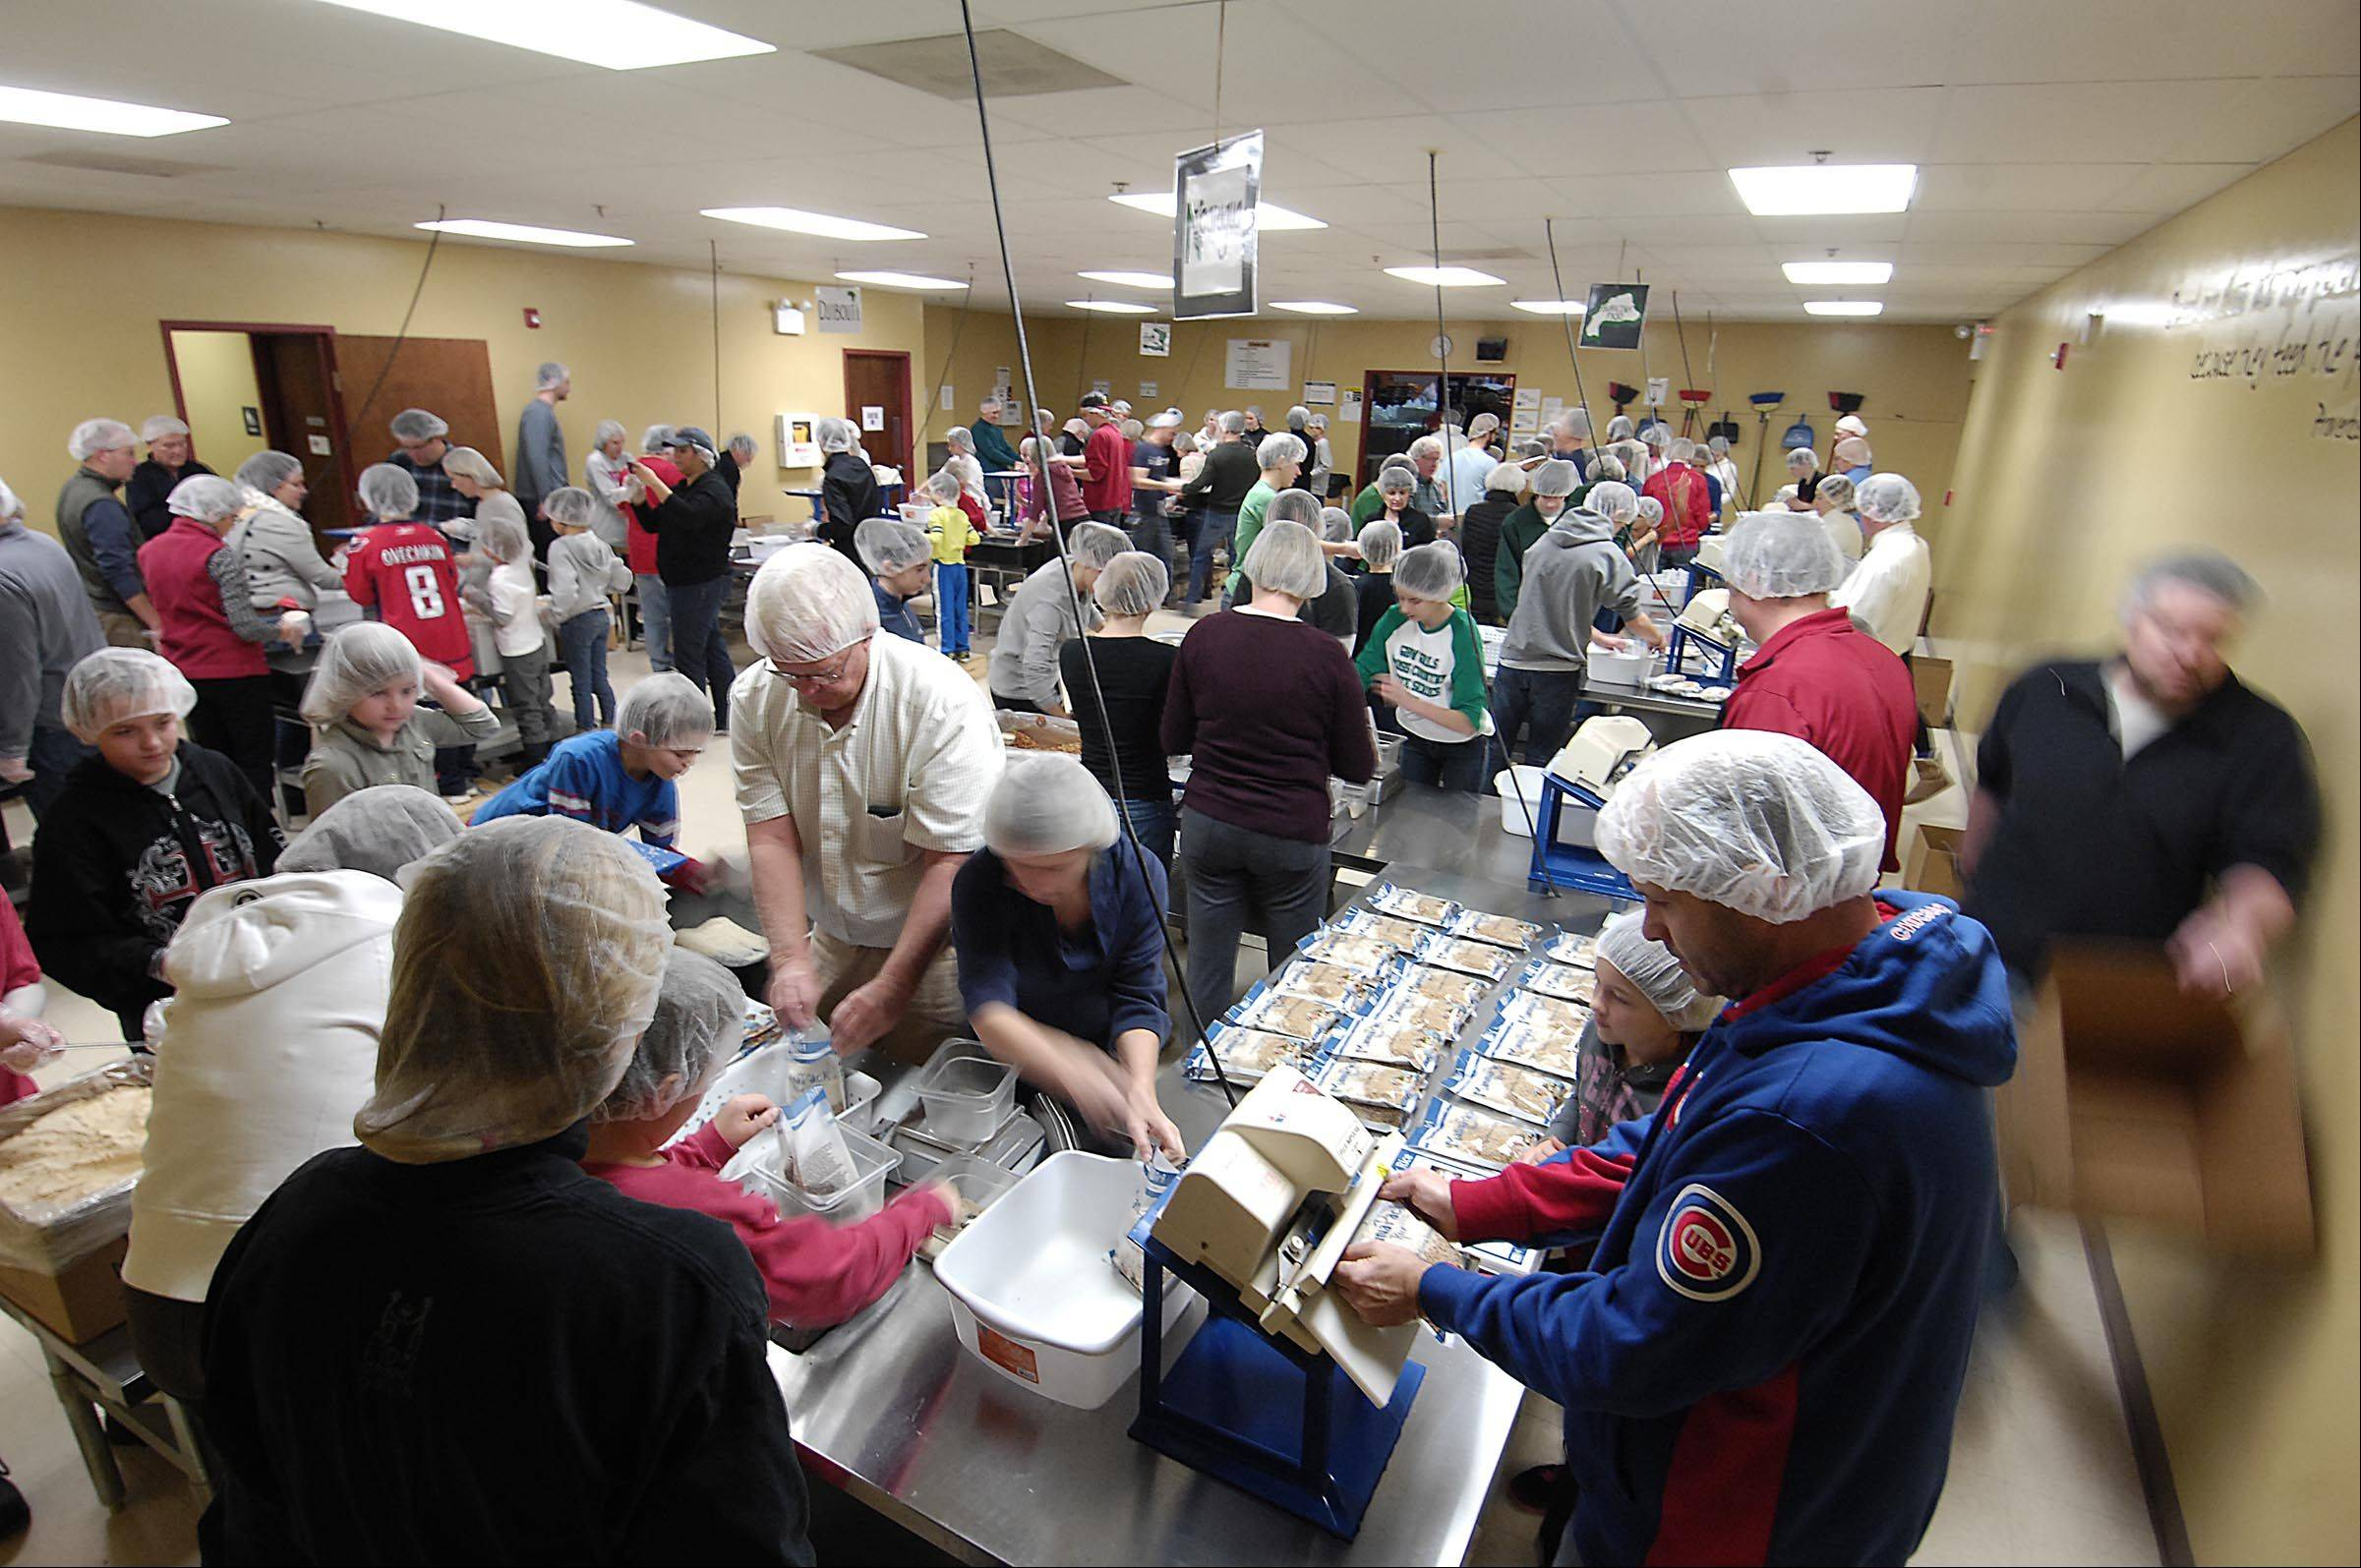 More than 100 people packed specially engineered food packets Wednesday at Feed My Starving Children in Aurora.